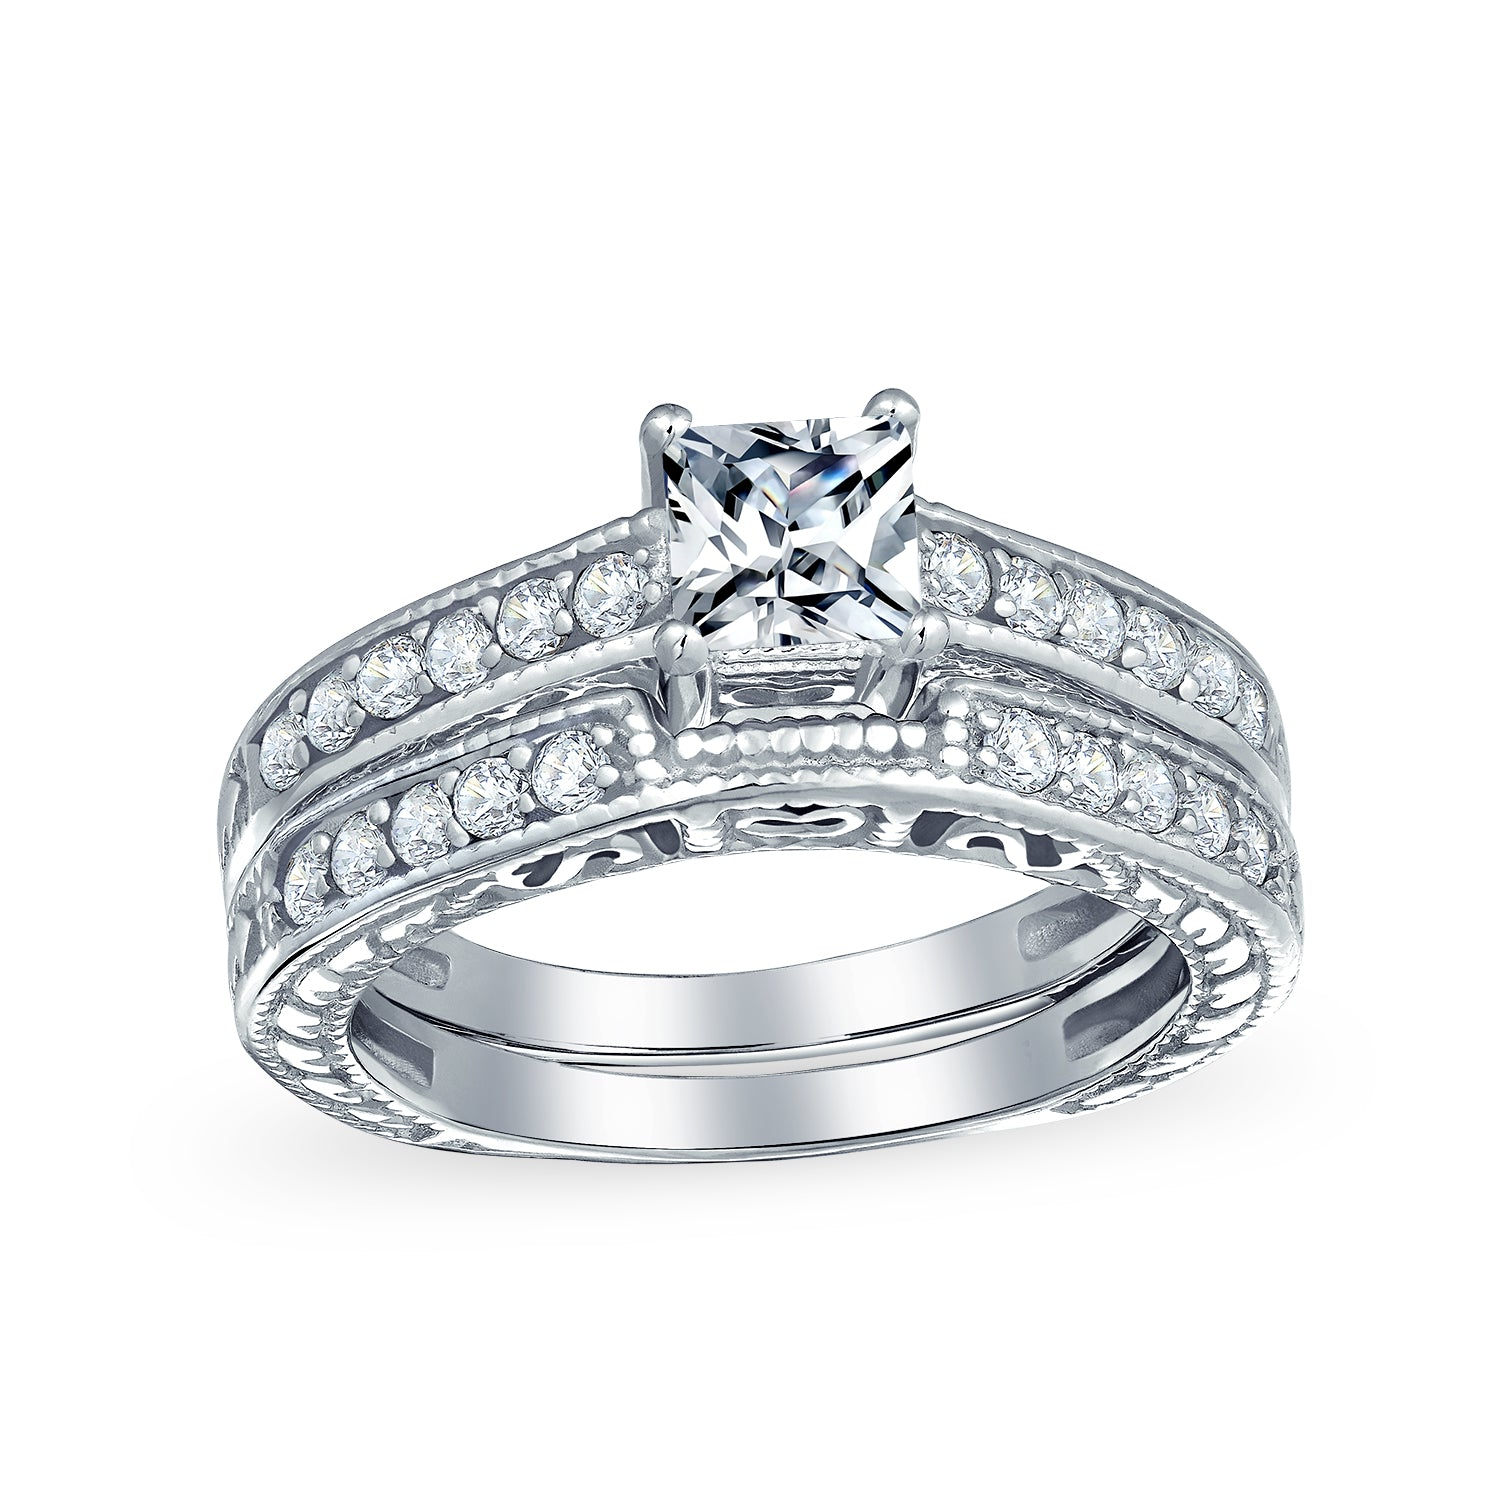 Personalized Stainless Steel Celtic Infinity Ring with Prong Set CZ